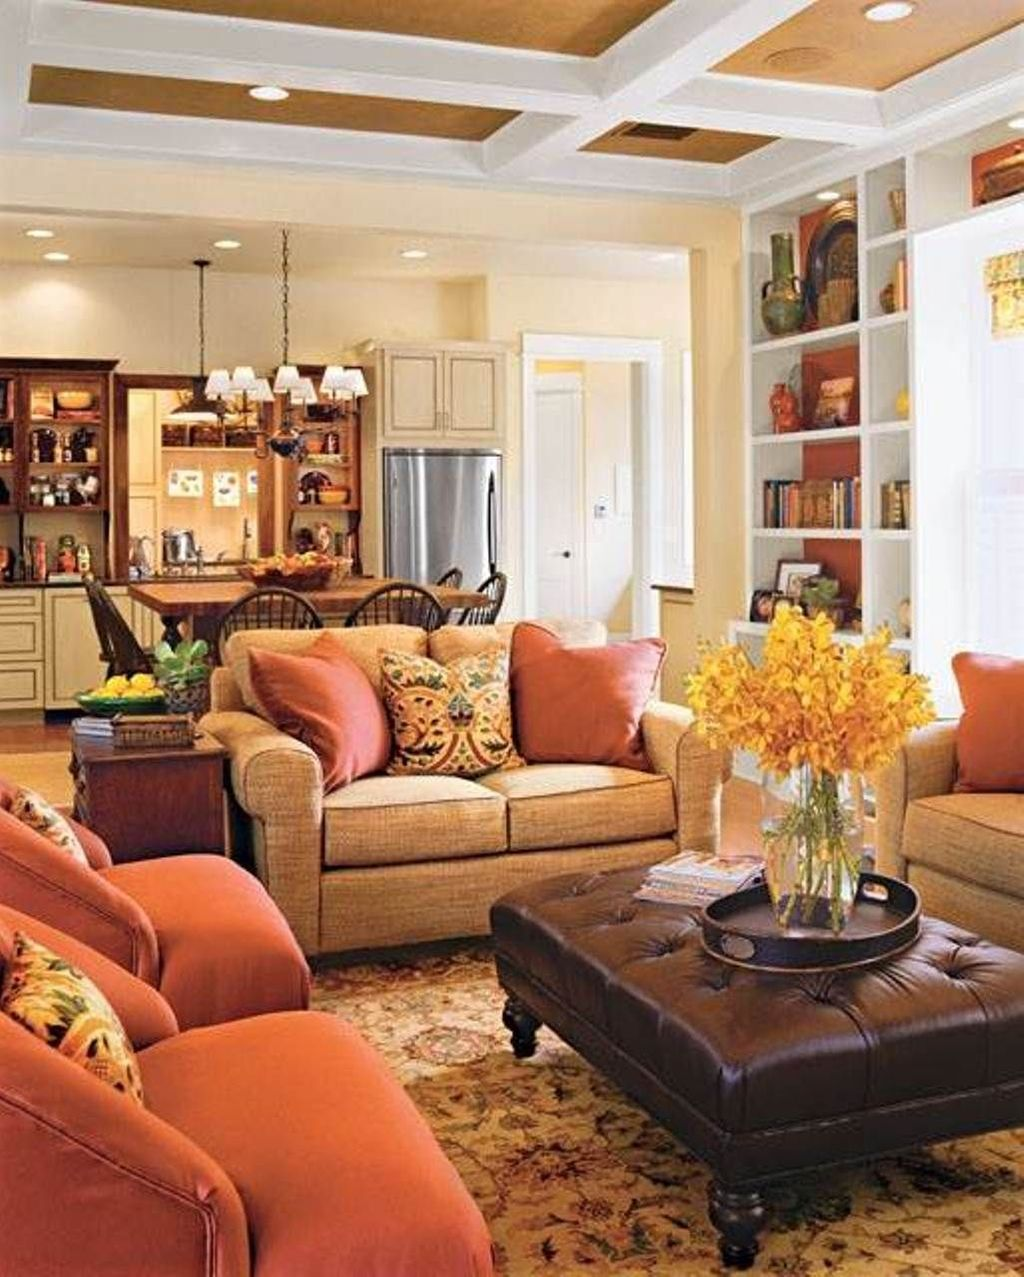 The Best Fall Living Room Decor Ideas Because Autumn Is Coming 20